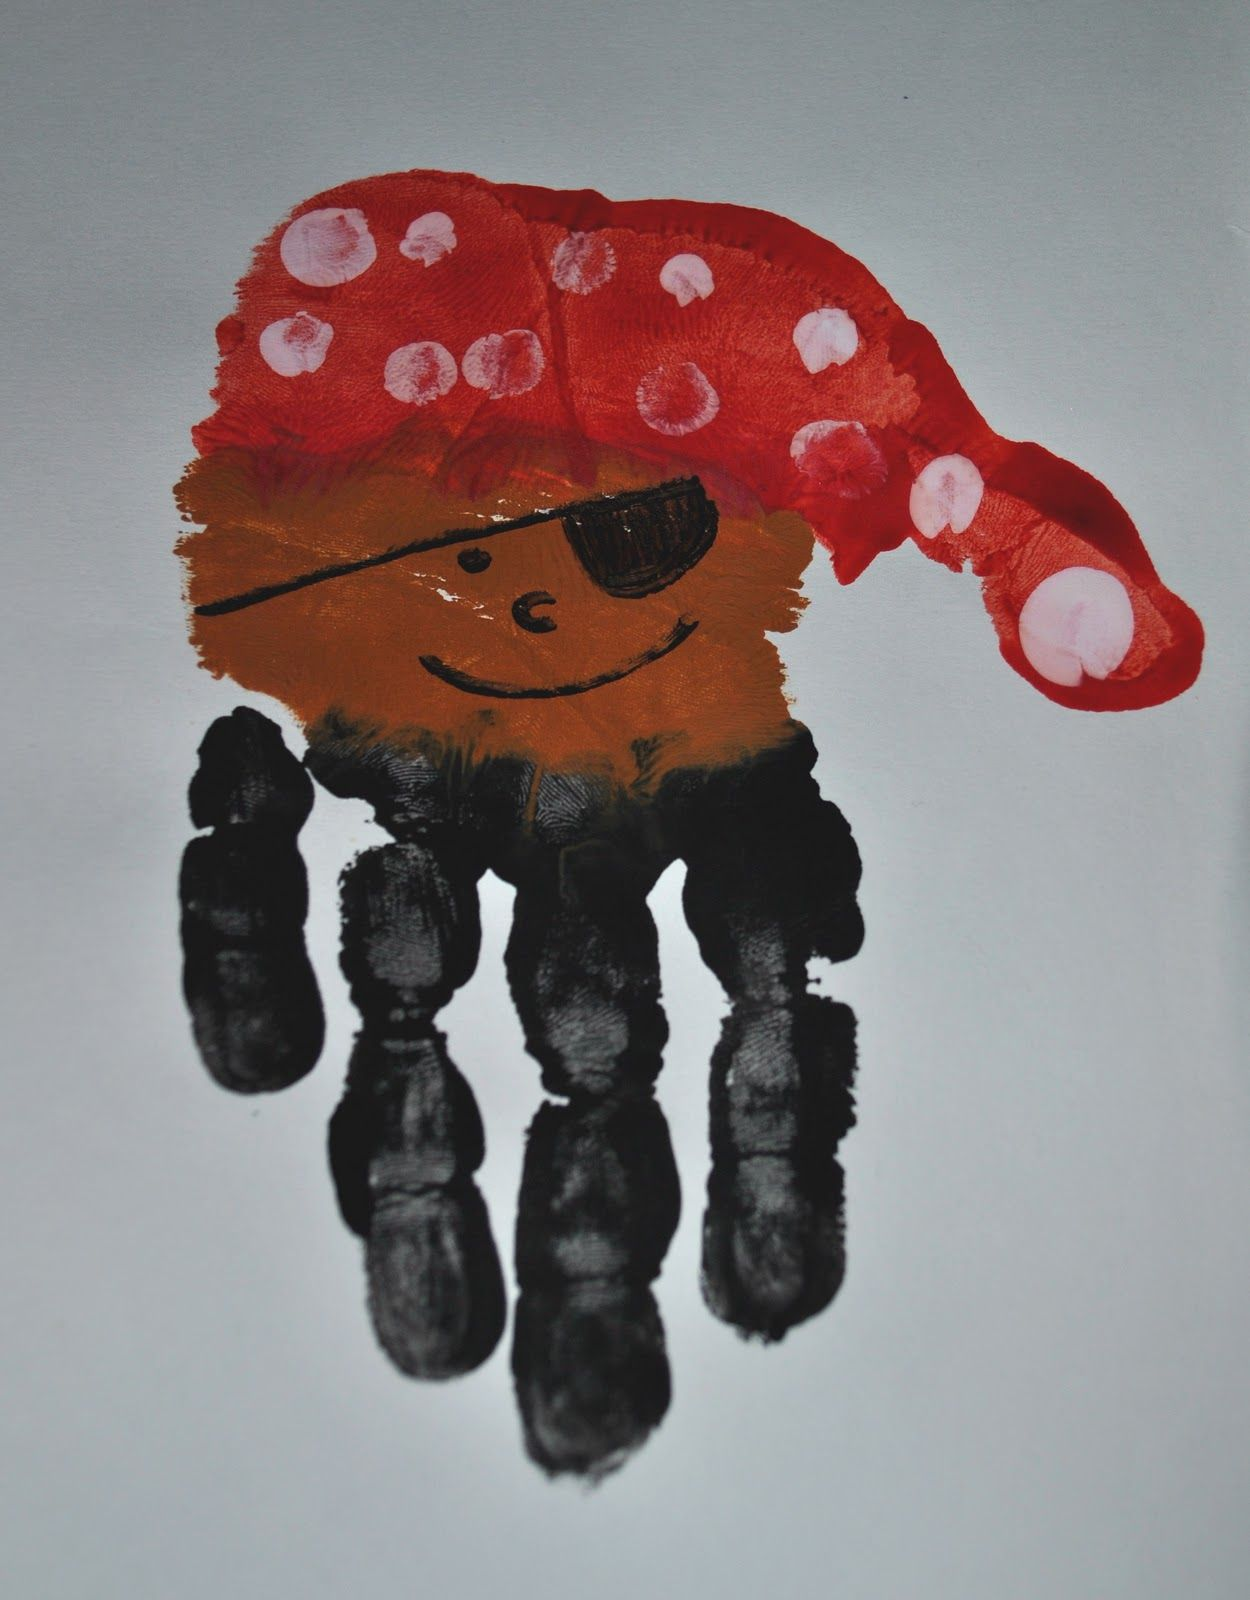 Pirate crafts for toddlers - Handprint Pirate Craft From Http Sunglassesonmyhead Blogspot Com 2011